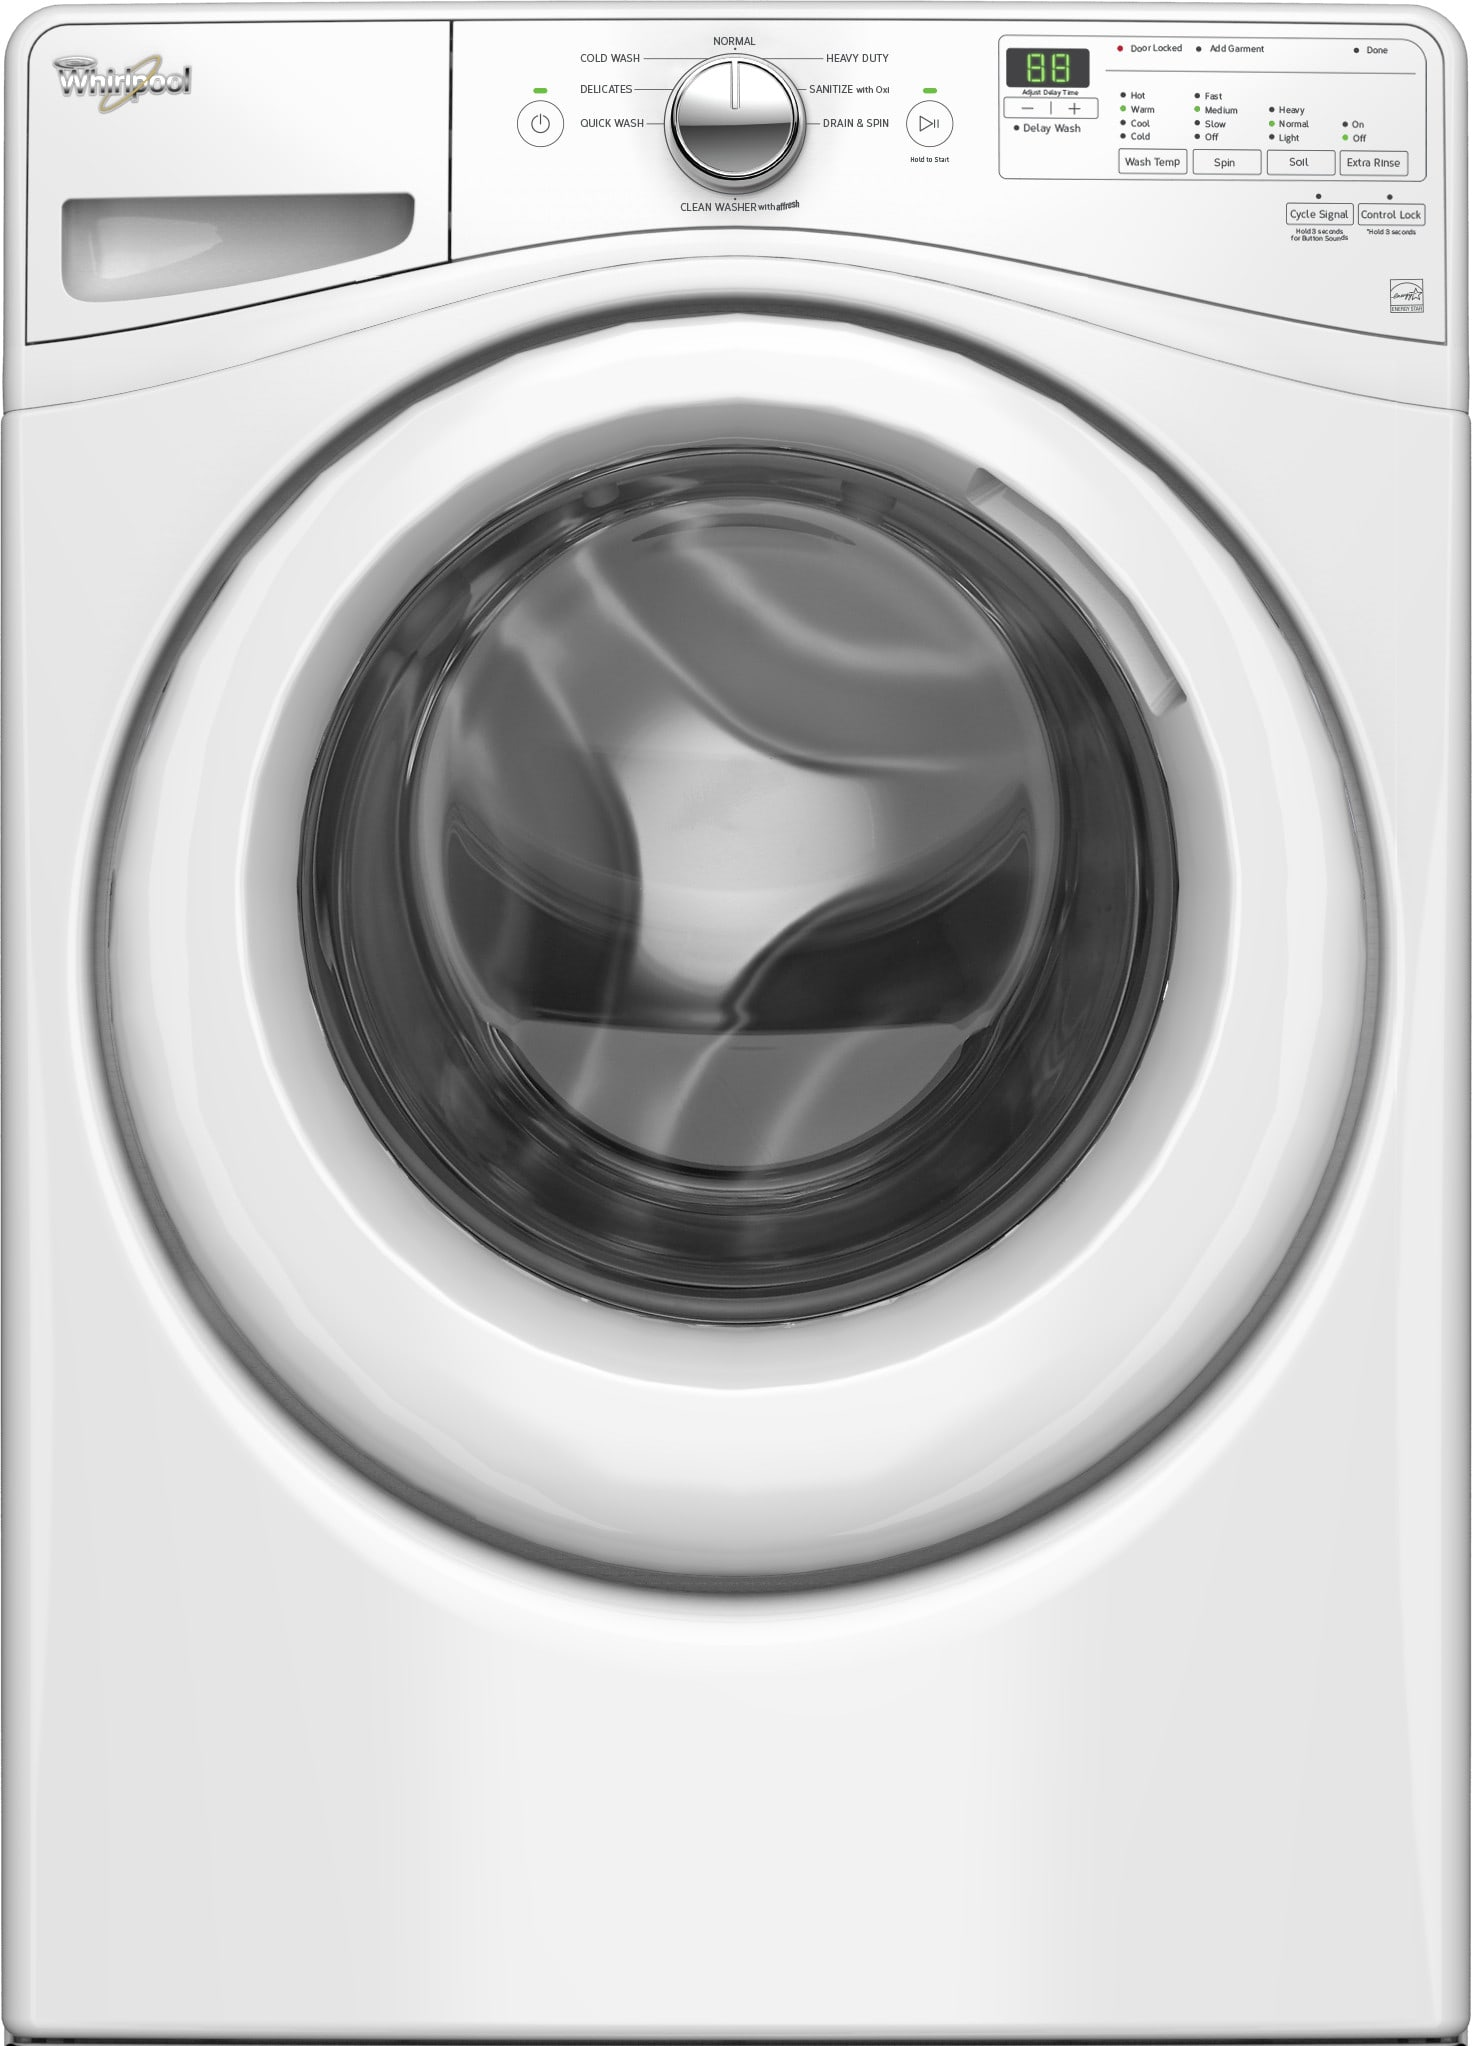 Whirlpool Wgd72hedw 27 Inch 7 4 Cu Ft Gas Dryer With 6